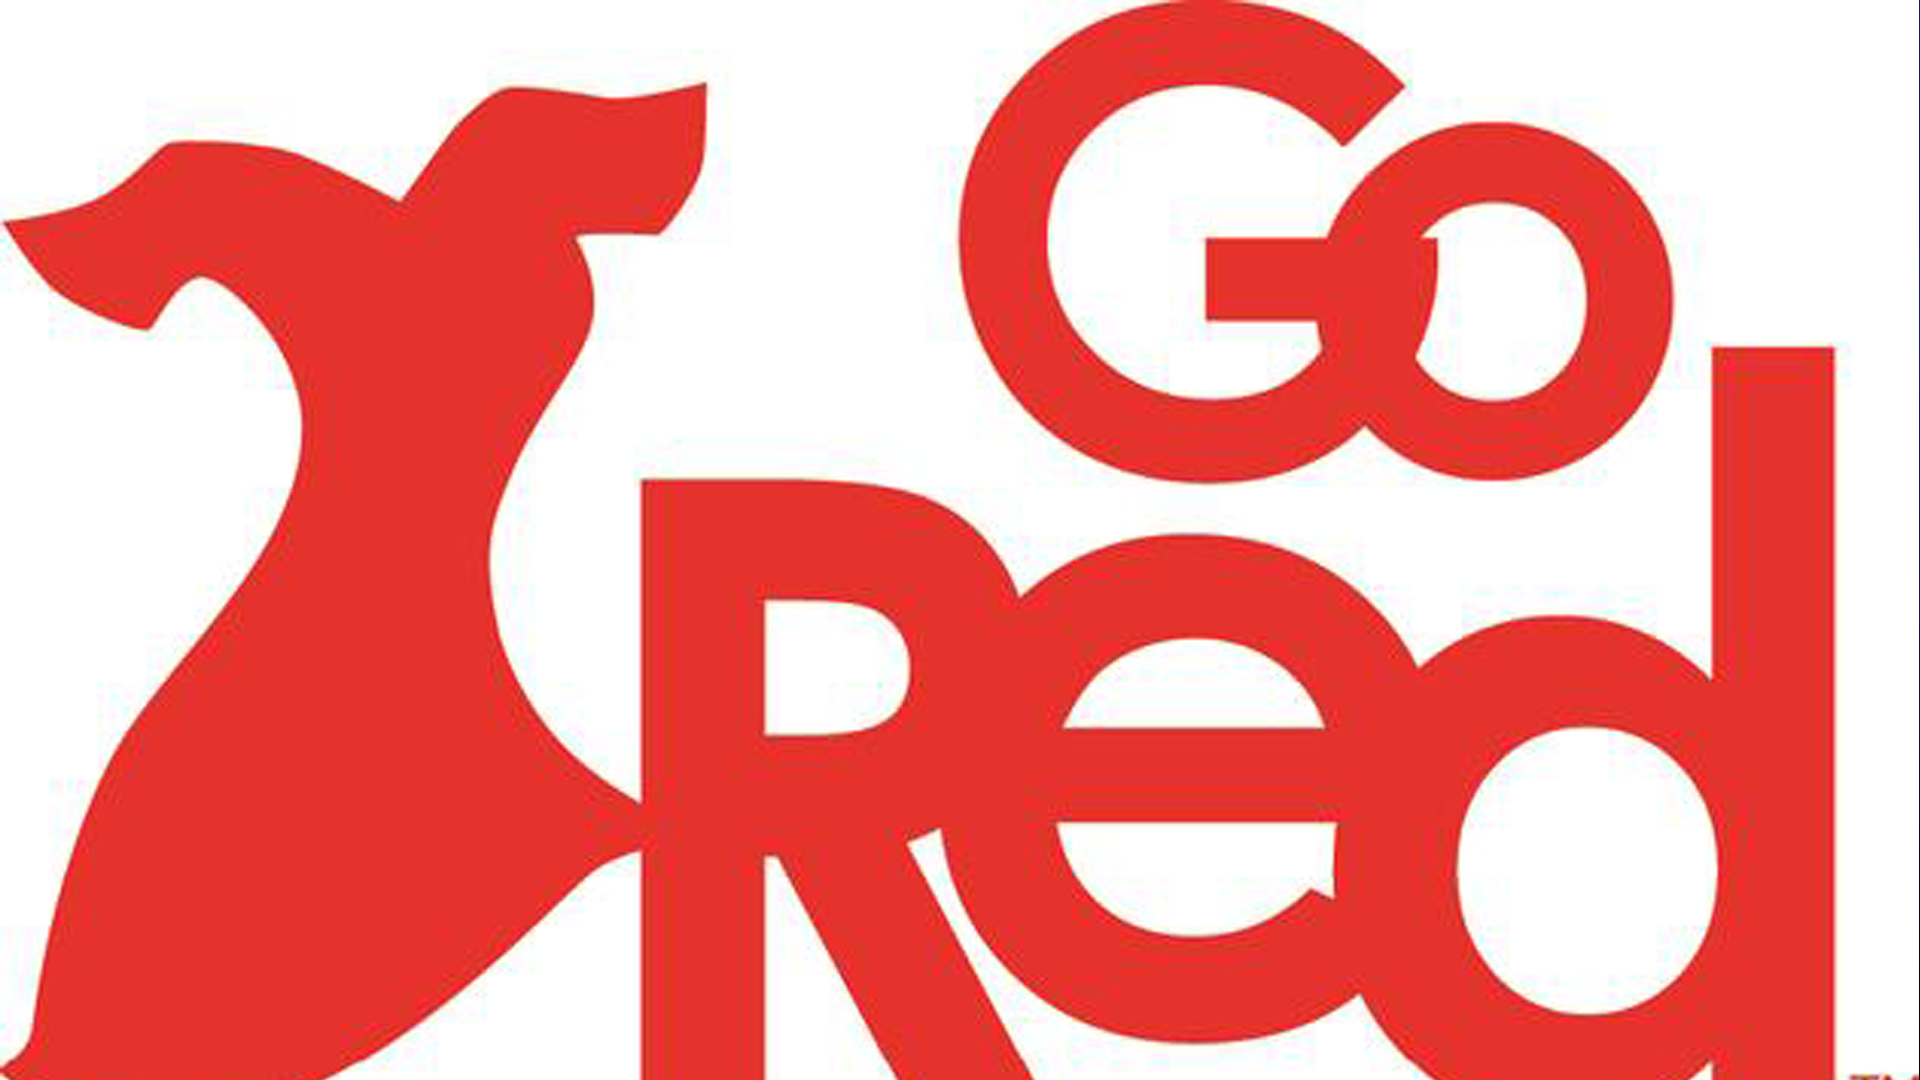 Go Red For Women\' kicks off at the national wear red day in.